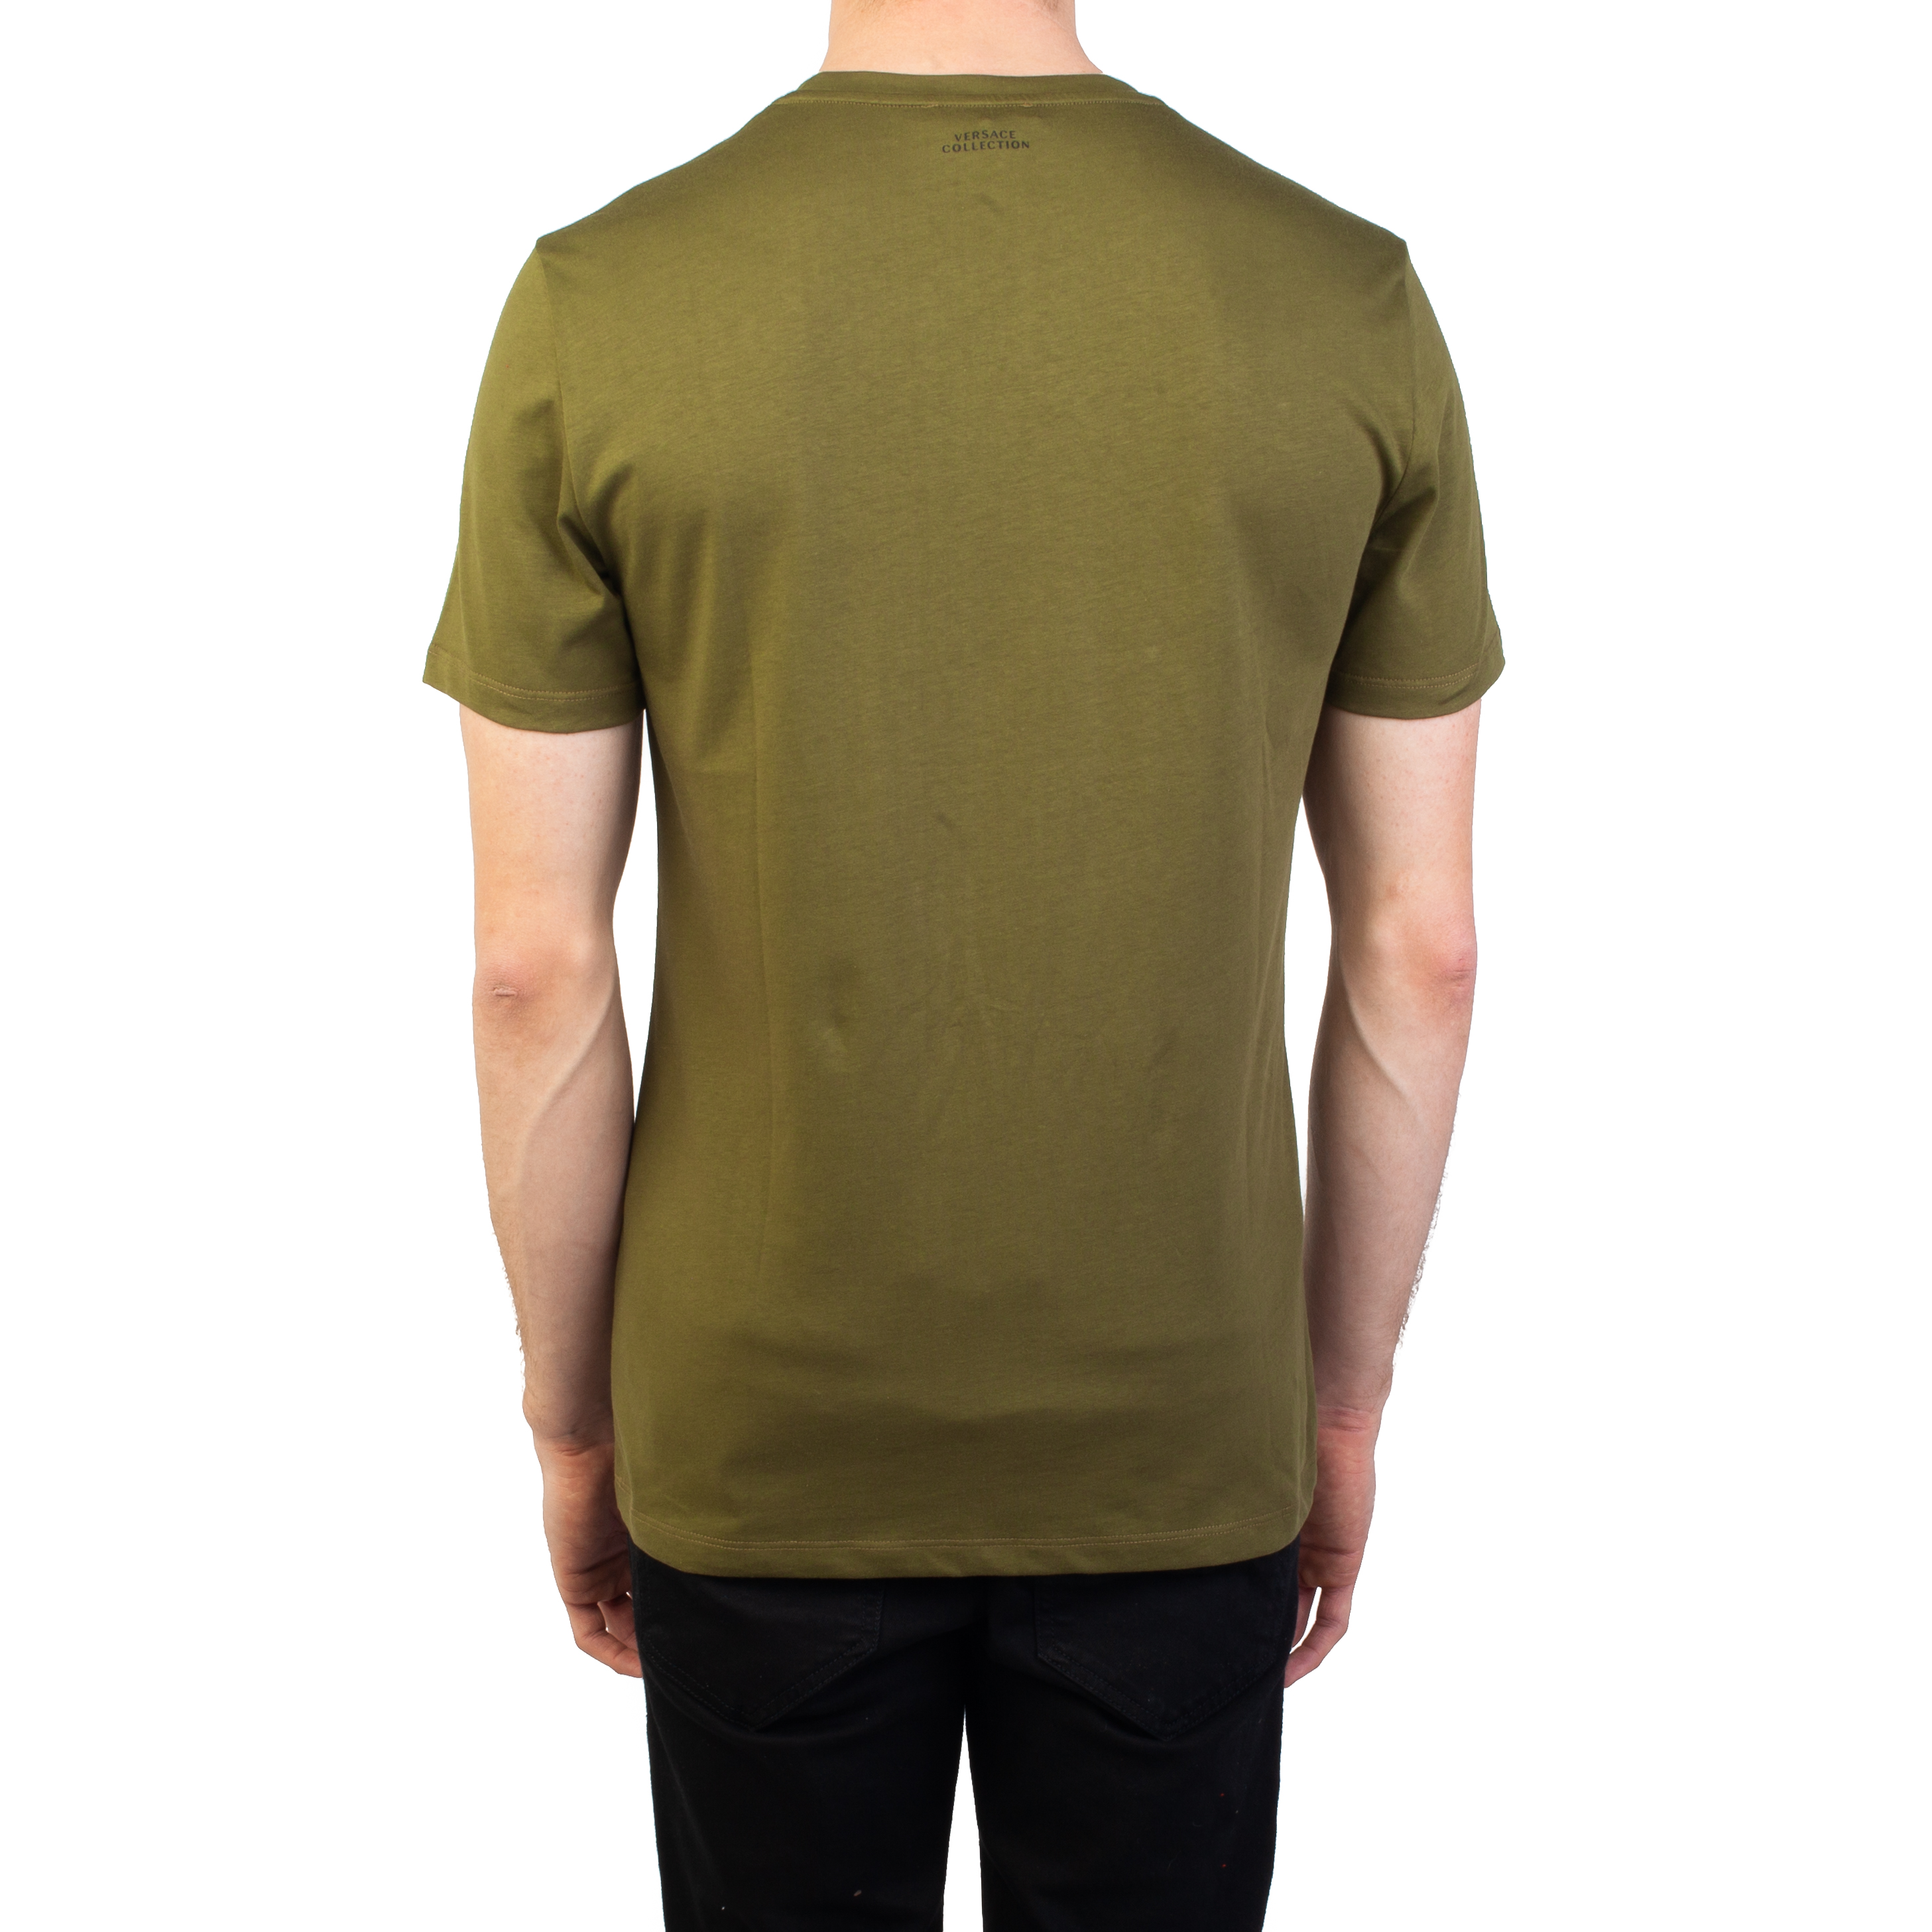 d957d2f0 Versace Collection Men's Cotton Baroque Graphic T-Shirt Military Green